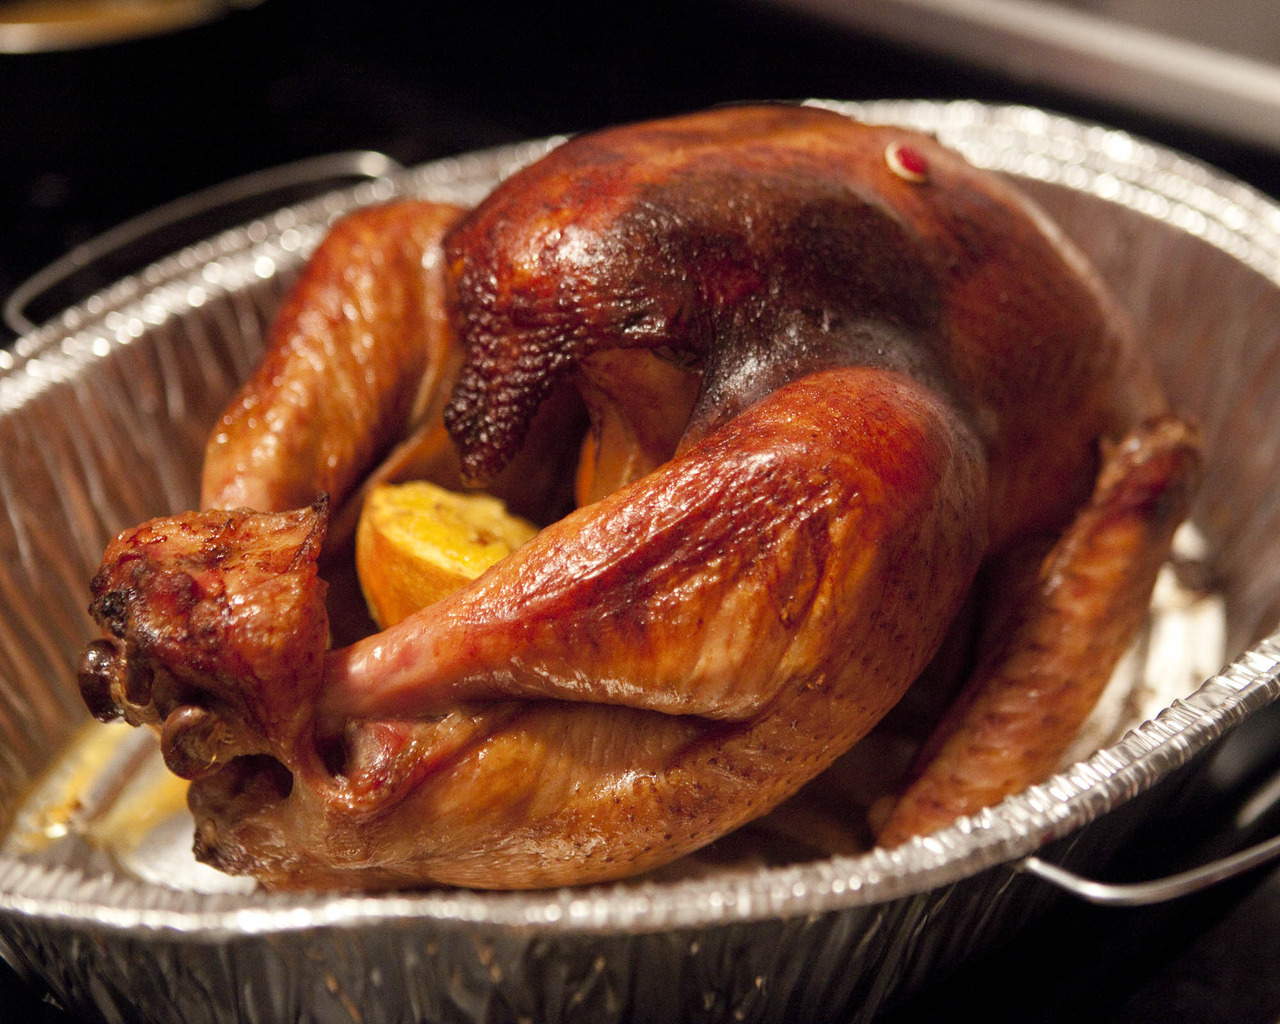 Drunken British Bucket Turkey Or otherwise known as Orange Bourbon Tea Brined Turkey roasted with Molasses Bourbon Orange Butter. Just… wow. Anyway, follow the directions here for the brine, then follow these easy steps to inject your turkey full of goodness to bake. Ingredients: Brined turkey 1 stick of butter Zest and juice of 1 orange 1/4 cup bourbon 1/4 cup molasses Cayenne pepper Salt 2 springs of rosemary 2 bay leaves Put the butter, orange zest, half the orange juice, bourbon, molasses, cayenne pepper, and salt in a blender.  This works better if the butter is at room temperature, but whatever.  Blend.  It may not combine entirely, but that's ok.  Refrigerate it for a bit if you need to. Make a pocket under the turkey skin, and mash the butter mixture all up in there.  Put 1 bay leaf and 1 sprig of rosemary on each side, over the breast.  Squeeze the remaining orange juice over the skin, and season the outside, and the cavity of the bird, with salt and pepper.  Stuff the orange rind into the cavity, and bake for however long a bird of the size you have needs to bake.  Cover it for the first 3/4 then remove the cover for the last 1/4.  Let it rest for 30 minutes, covered, before serving.